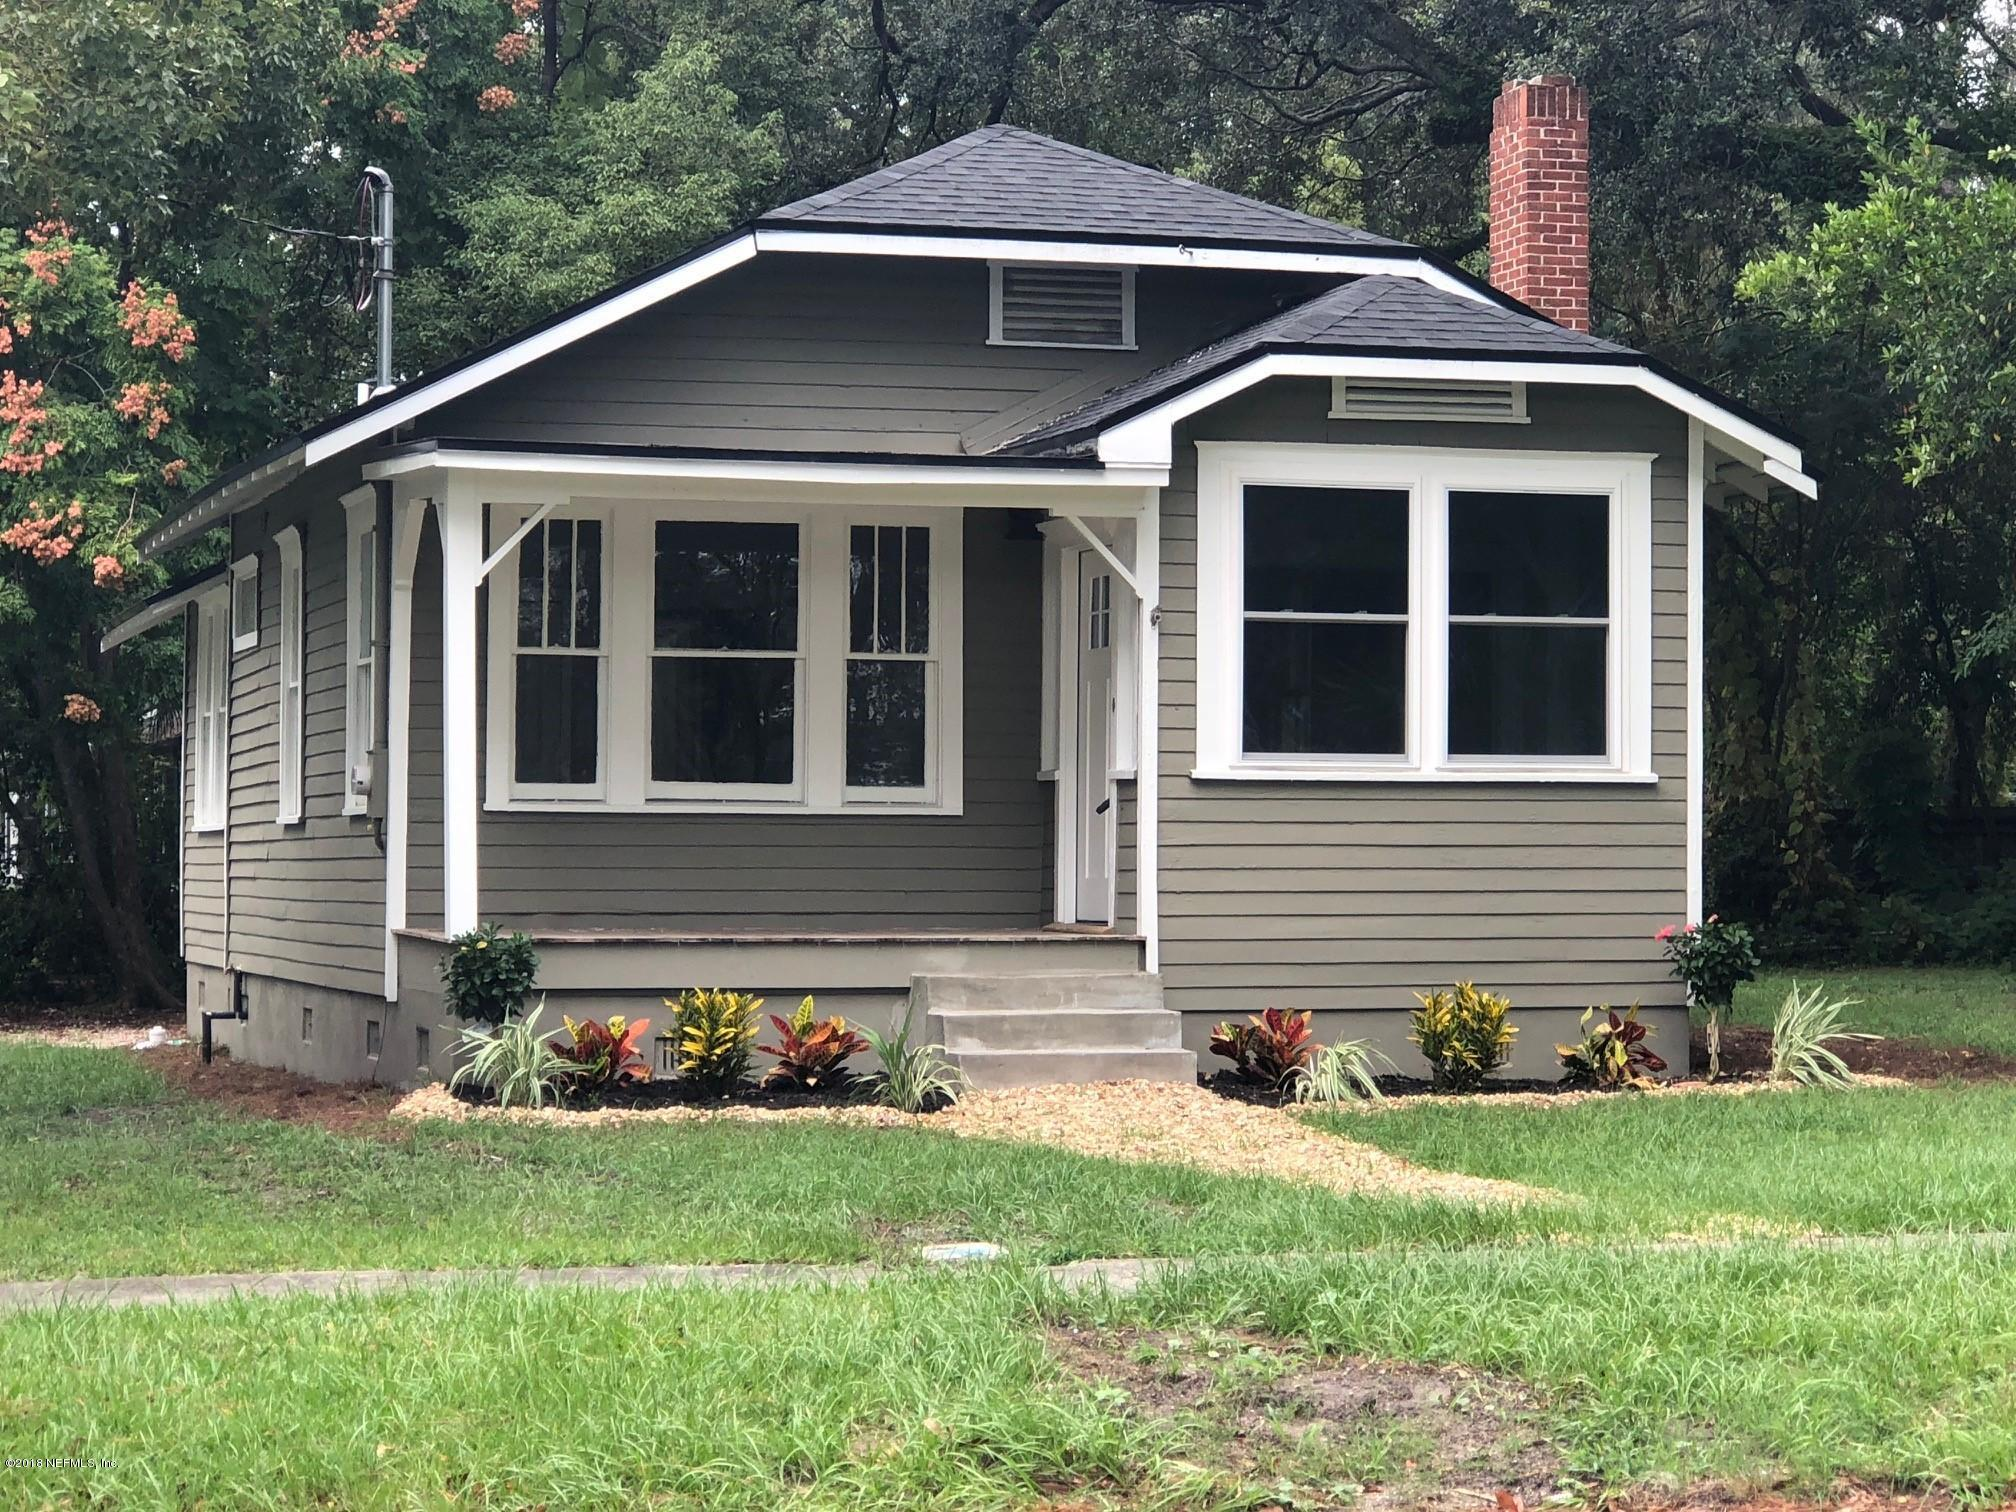 3723 PARK, JACKSONVILLE, FLORIDA 32205, 2 Bedrooms Bedrooms, ,1 BathroomBathrooms,Residential - single family,For sale,PARK,961755